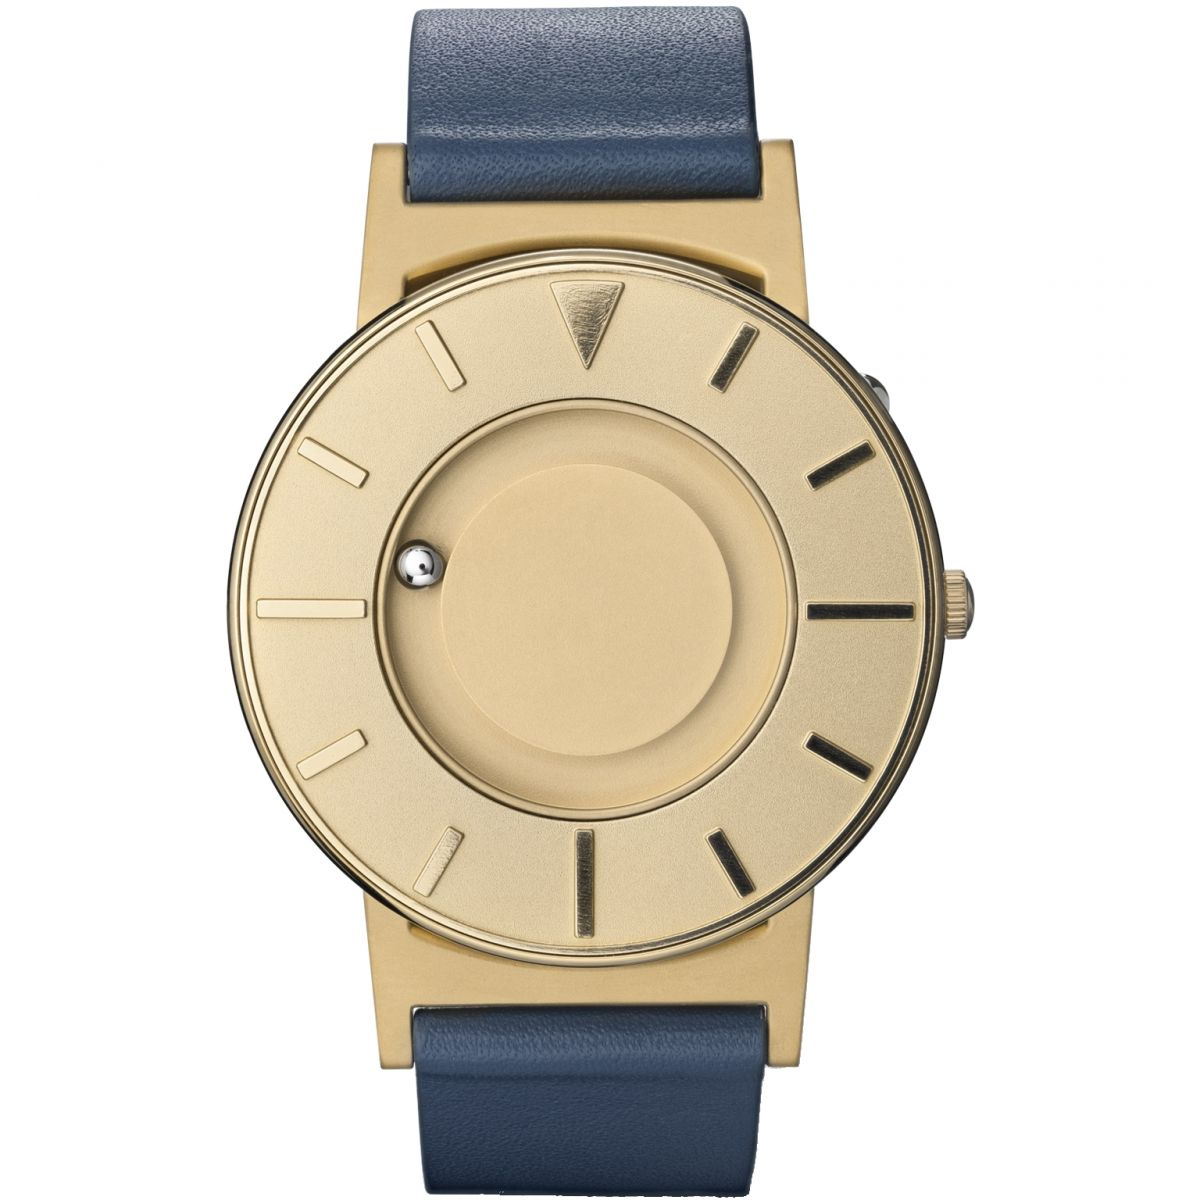 Men's Watches   Luxury, Fashion, Casual, Dress, and Sport ...